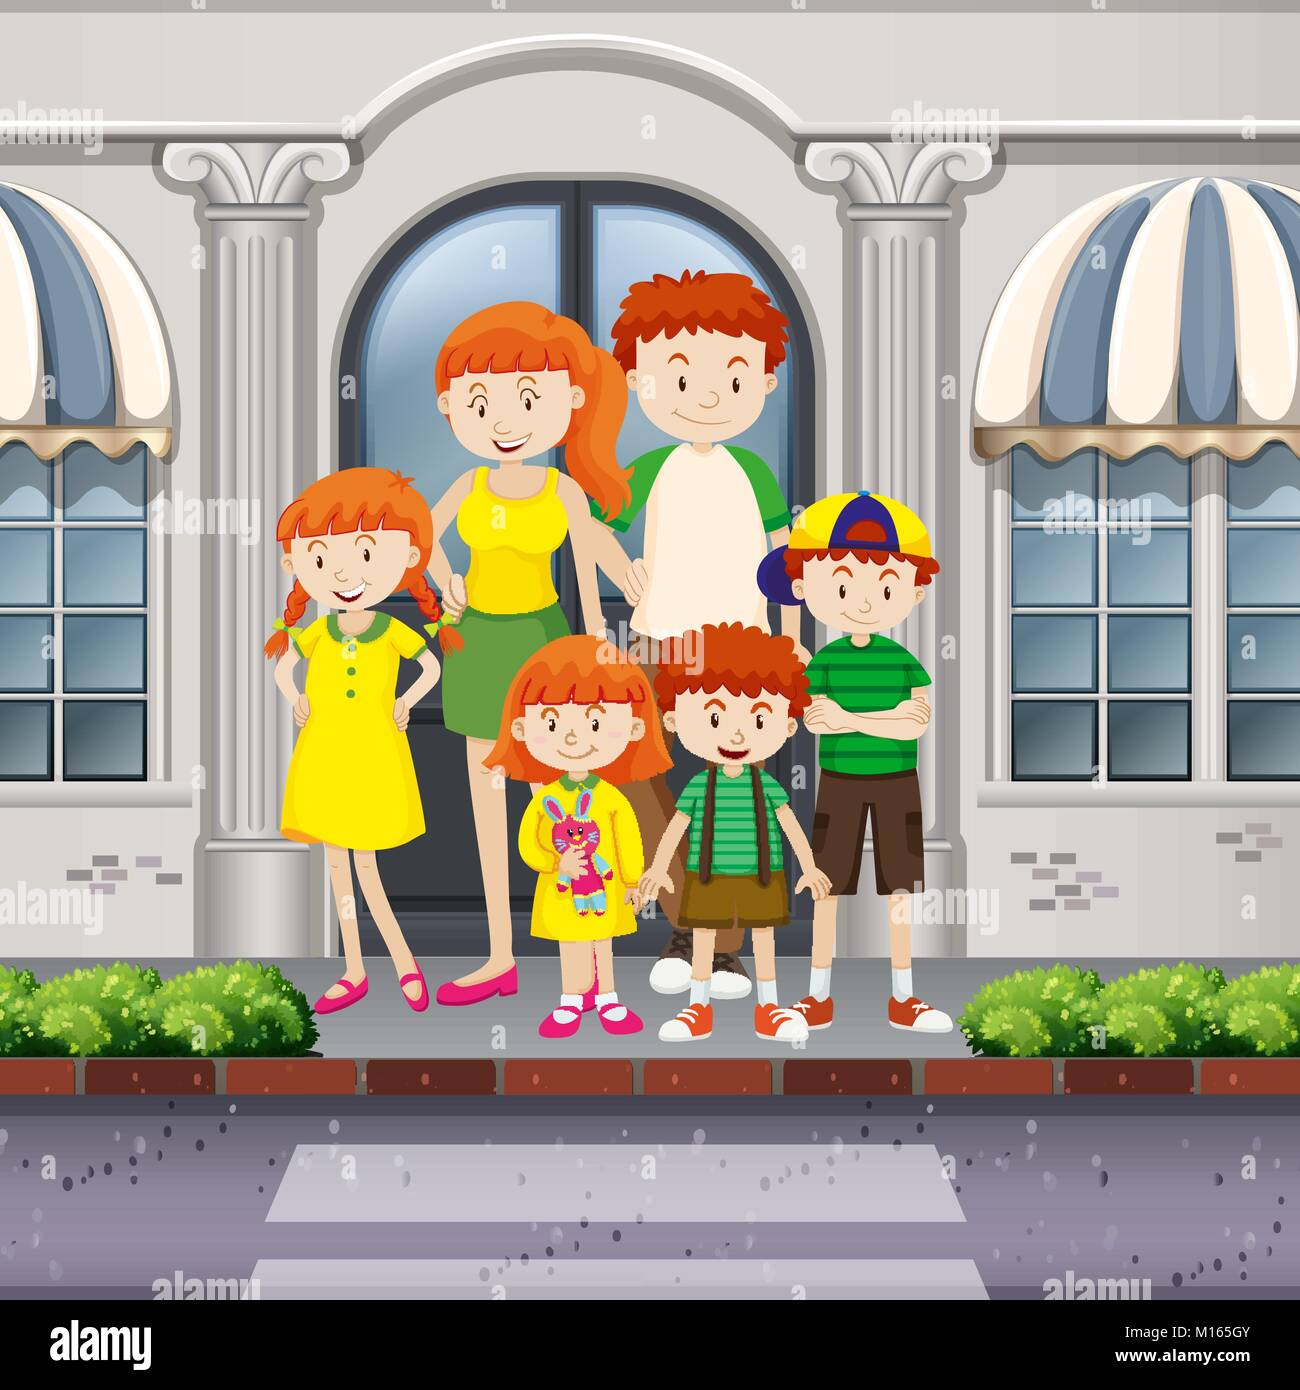 Family members standing on pavement illustration - Stock Vector